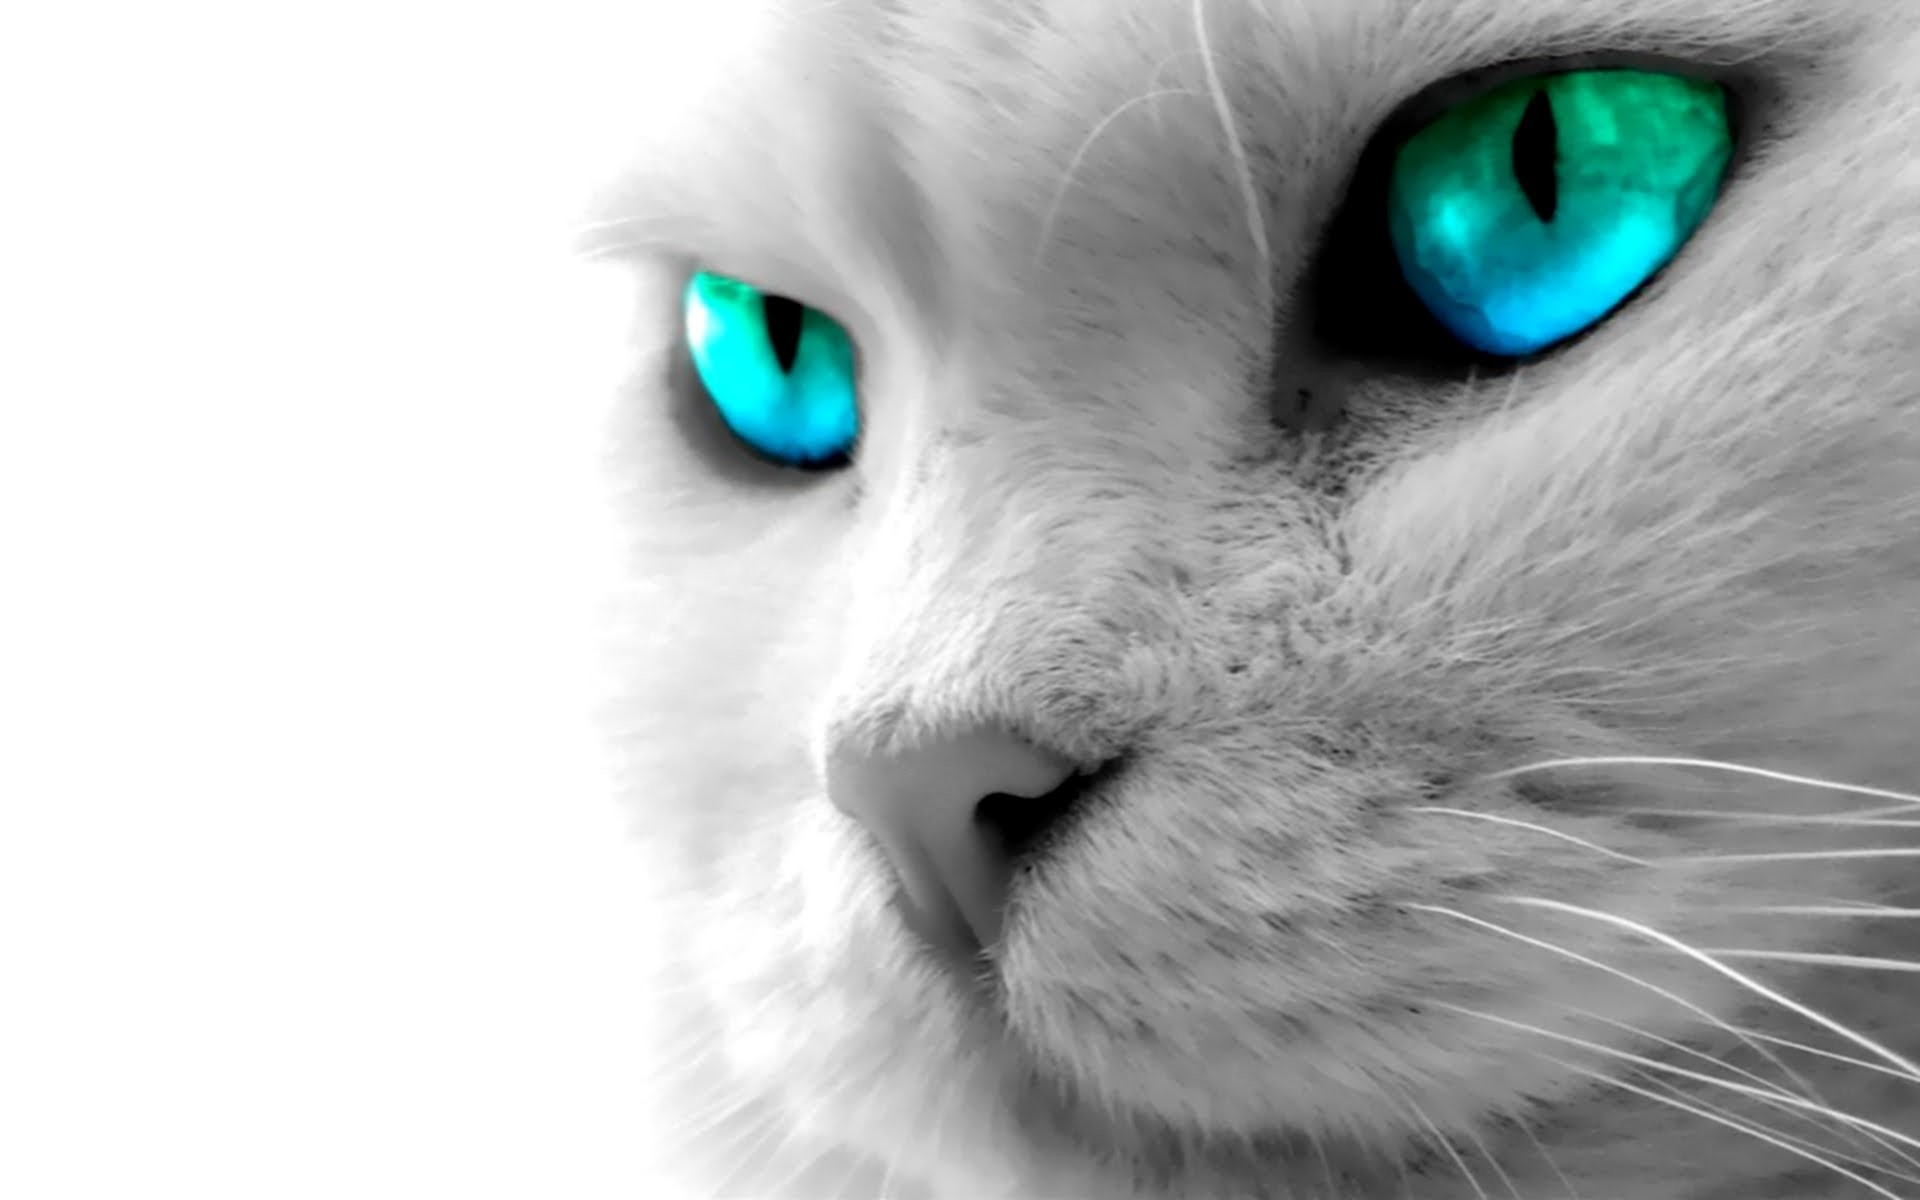 iPhone 6 Plus Wallpapers: Animal Wallpapers